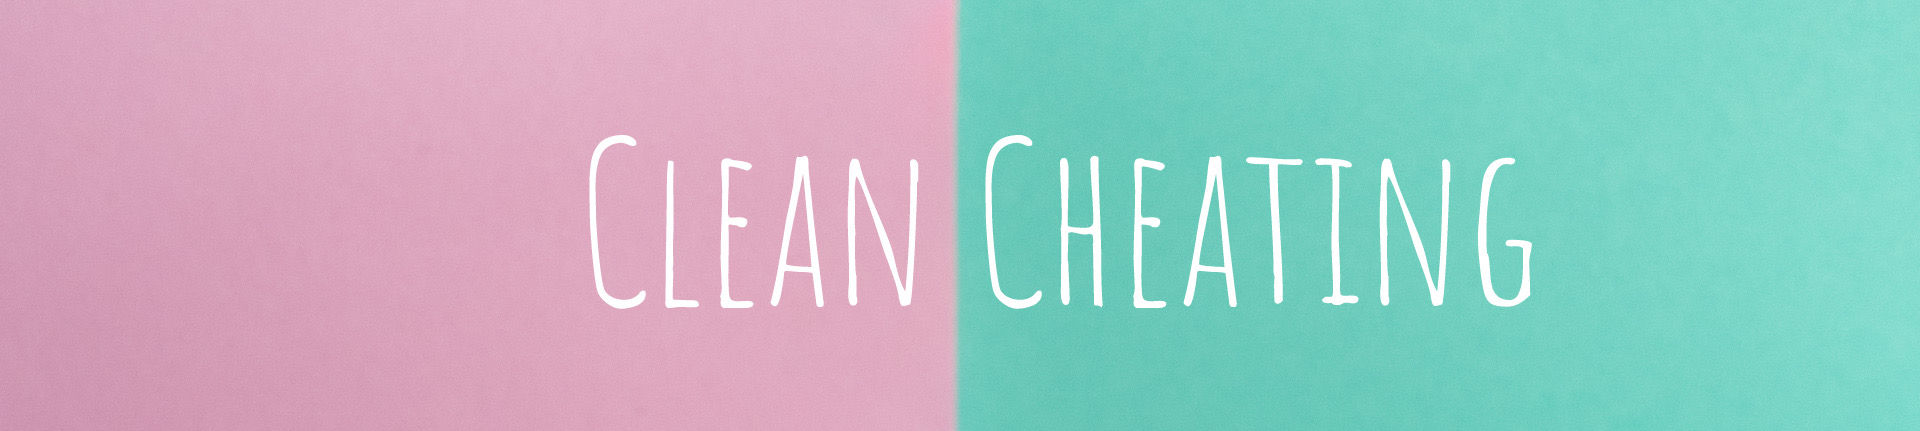 Clean Cheating